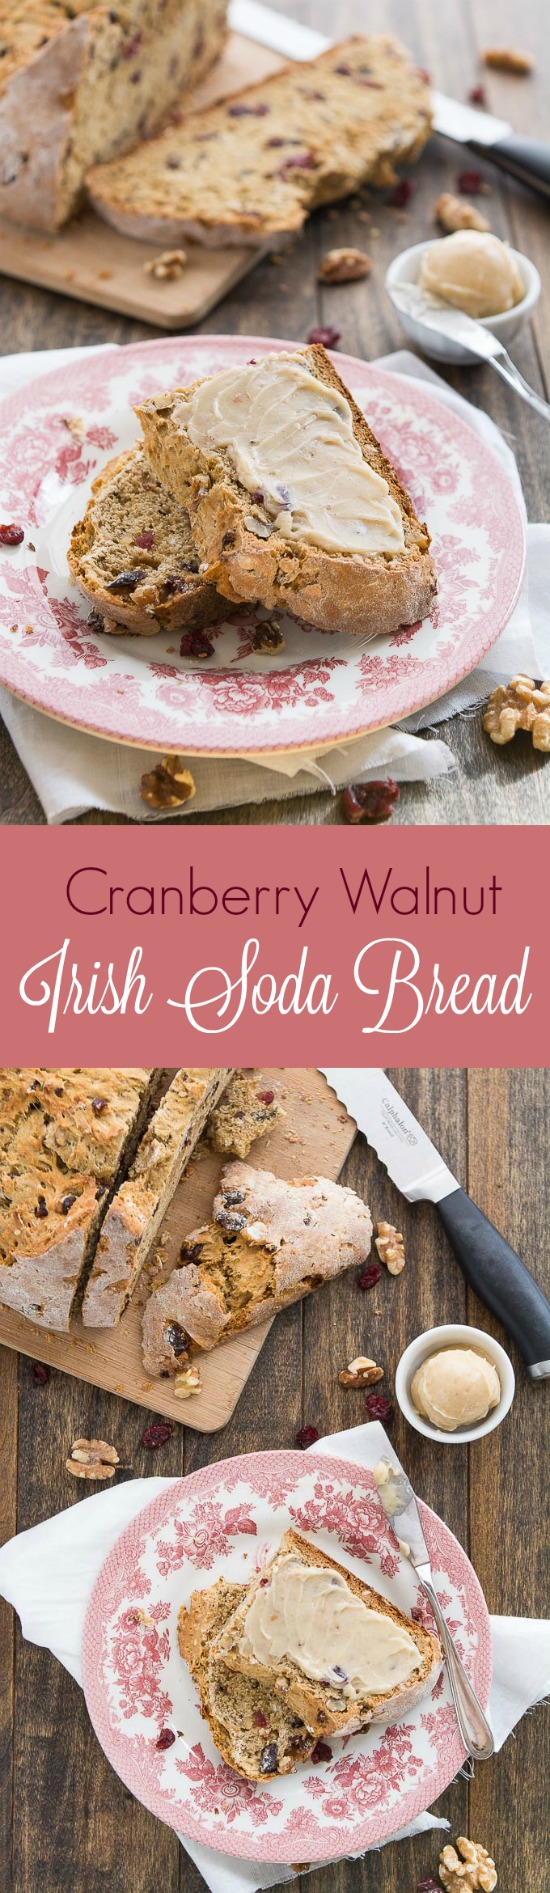 Celebrate St. Patrick's Day with some Cranberry Walnut Irish Soda Bread slathered with cinnamon honey butter.